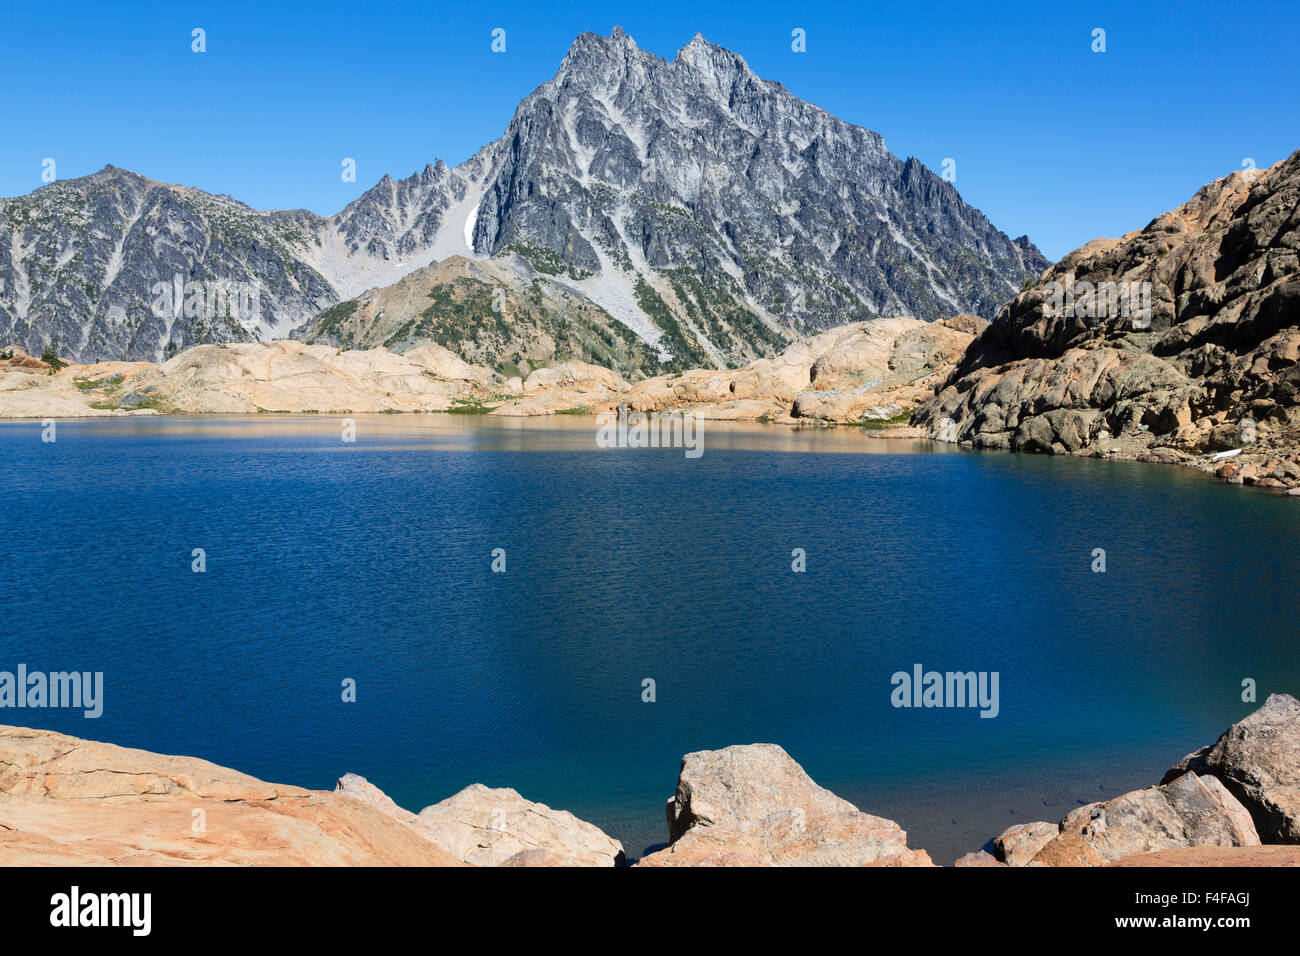 USA, Washington, Alpine Lakes Wilderness, Ingalls Lake and Mount Stuart. - Stock Image